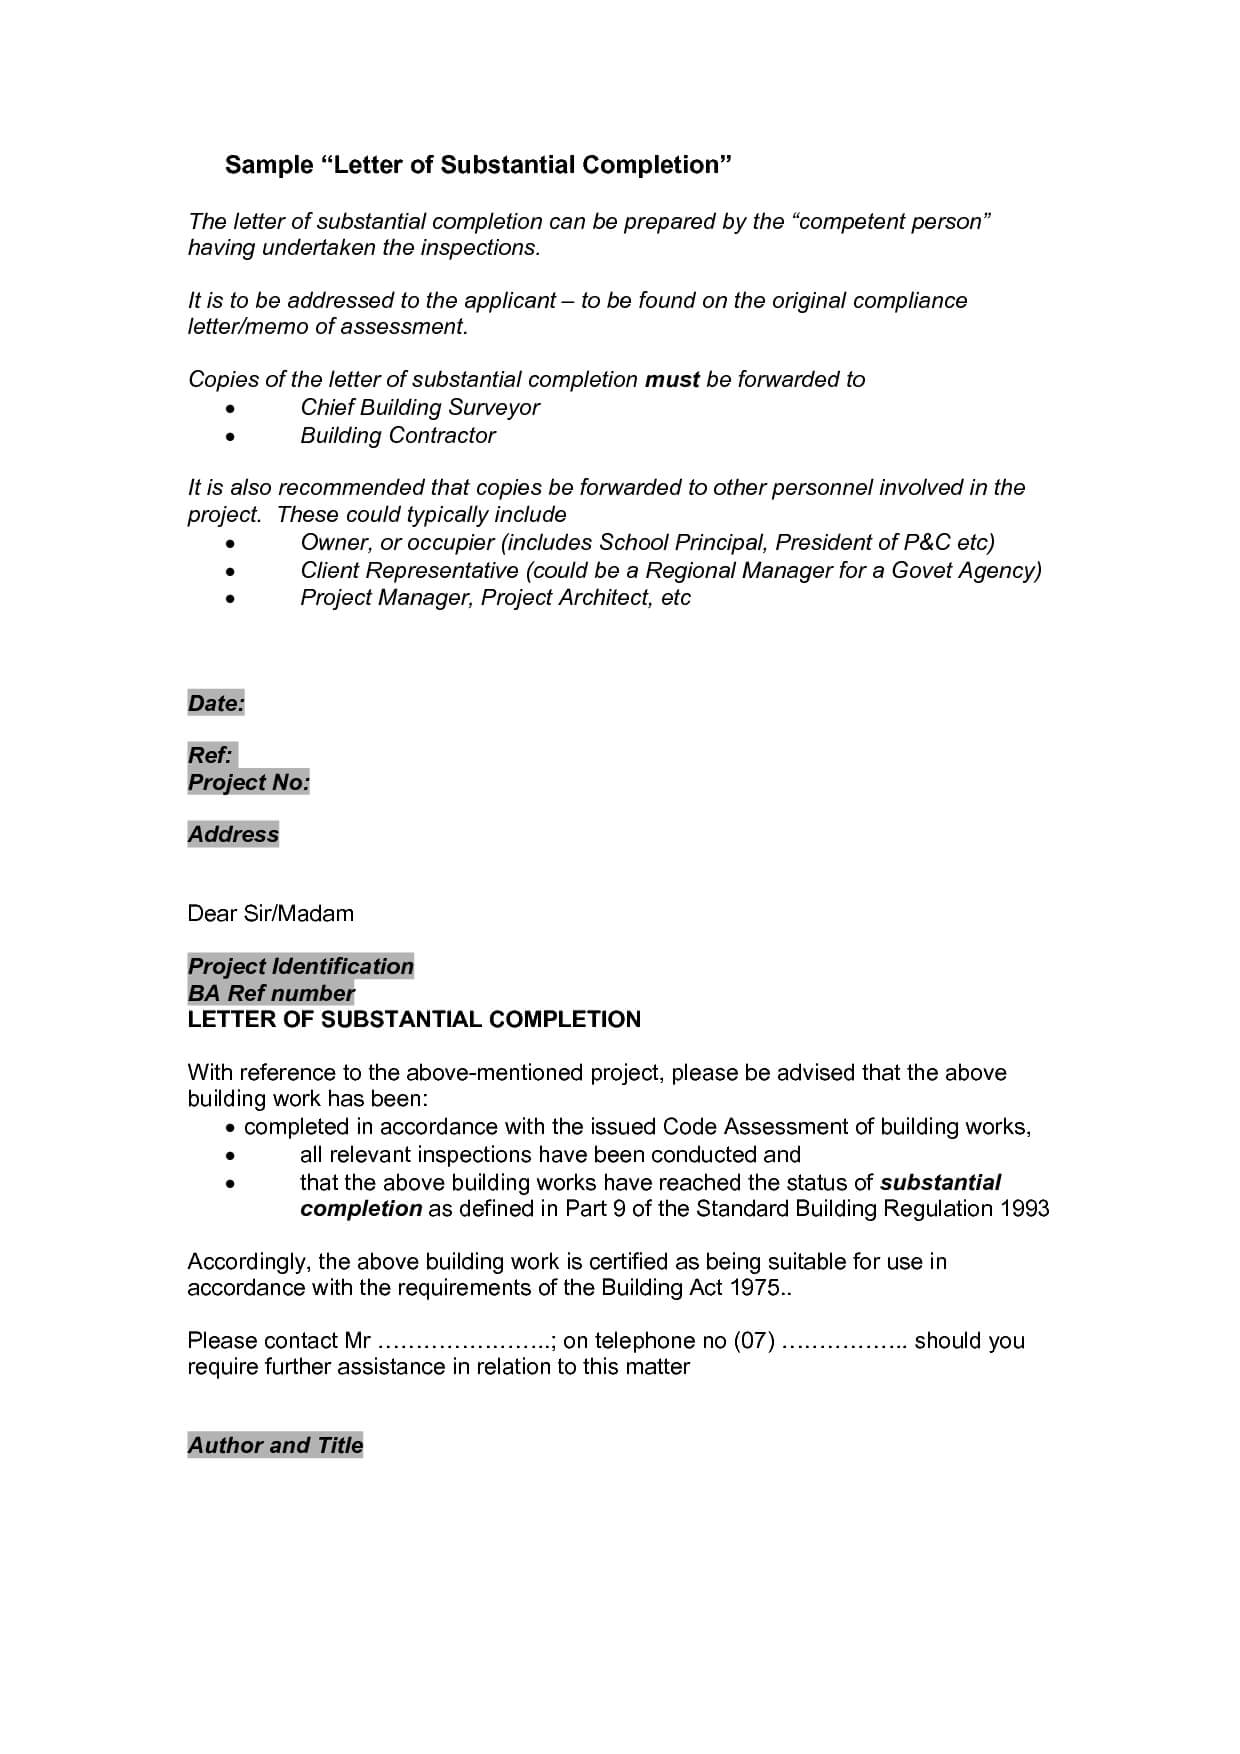 Certification Certificate Completion Construction Letter regarding Certificate Of Substantial Completion Template